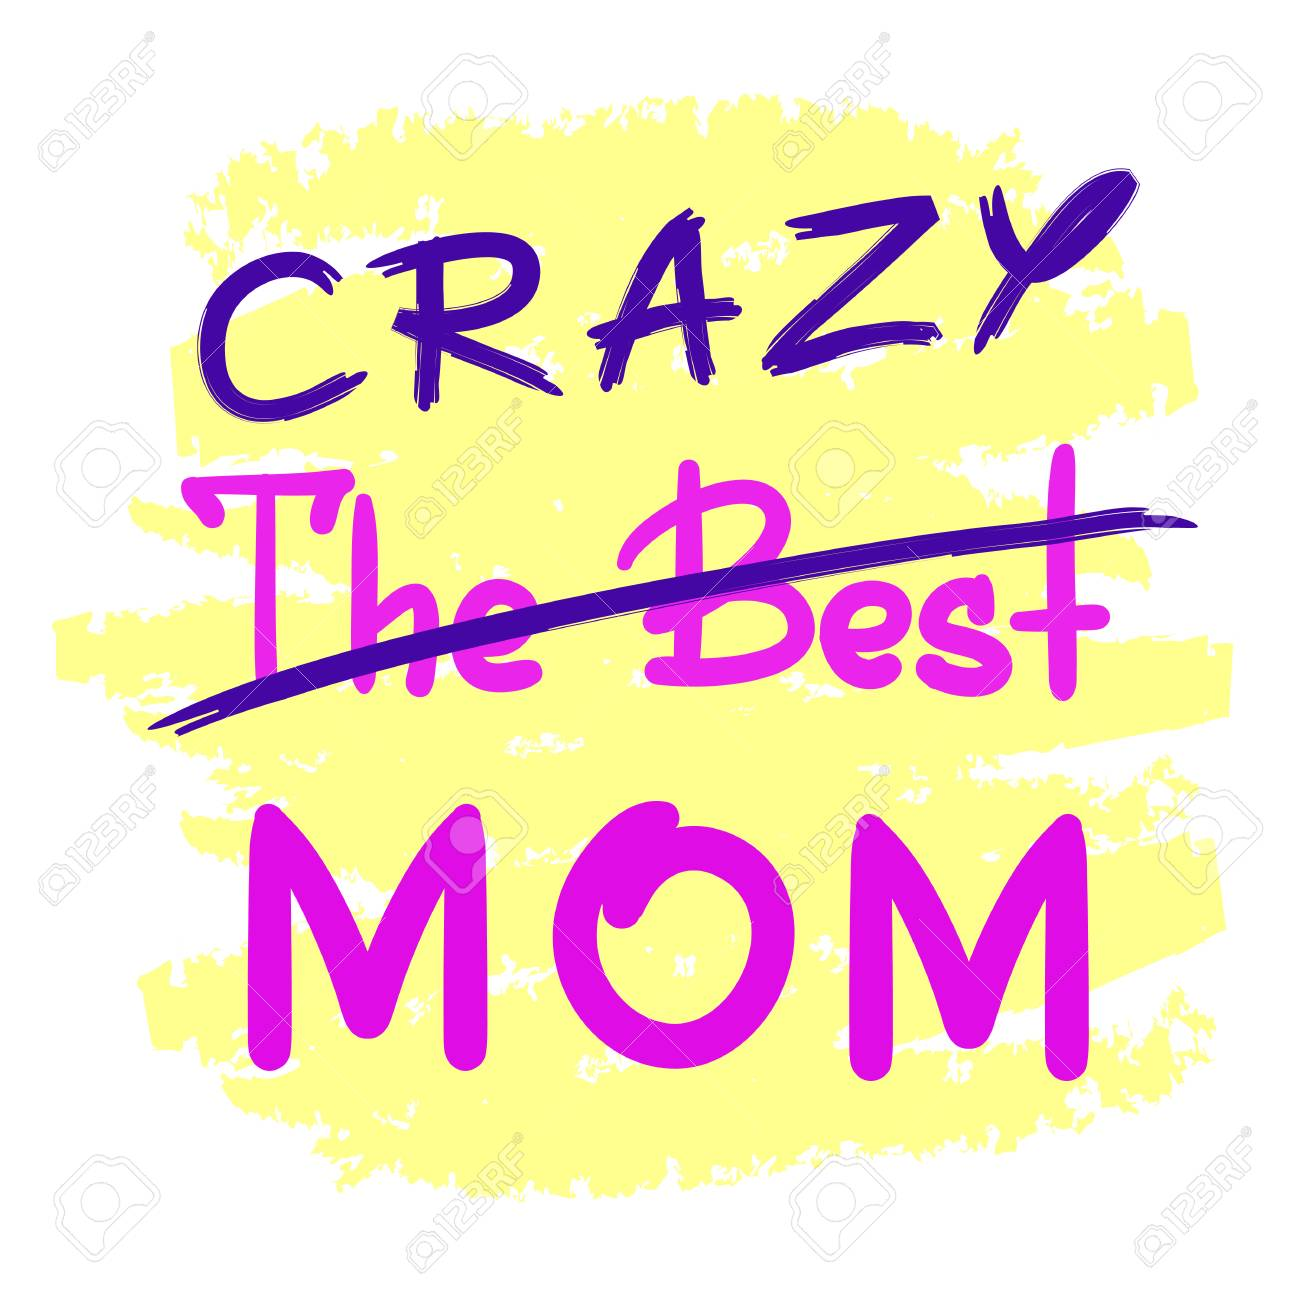 The best crazy mom - handwritten funny motivational quote. Print for inspiring poster, t-shirt, bag, cups, greeting postcard, flyer, sticker. Simple vector sign. Mother's day card - 104393821